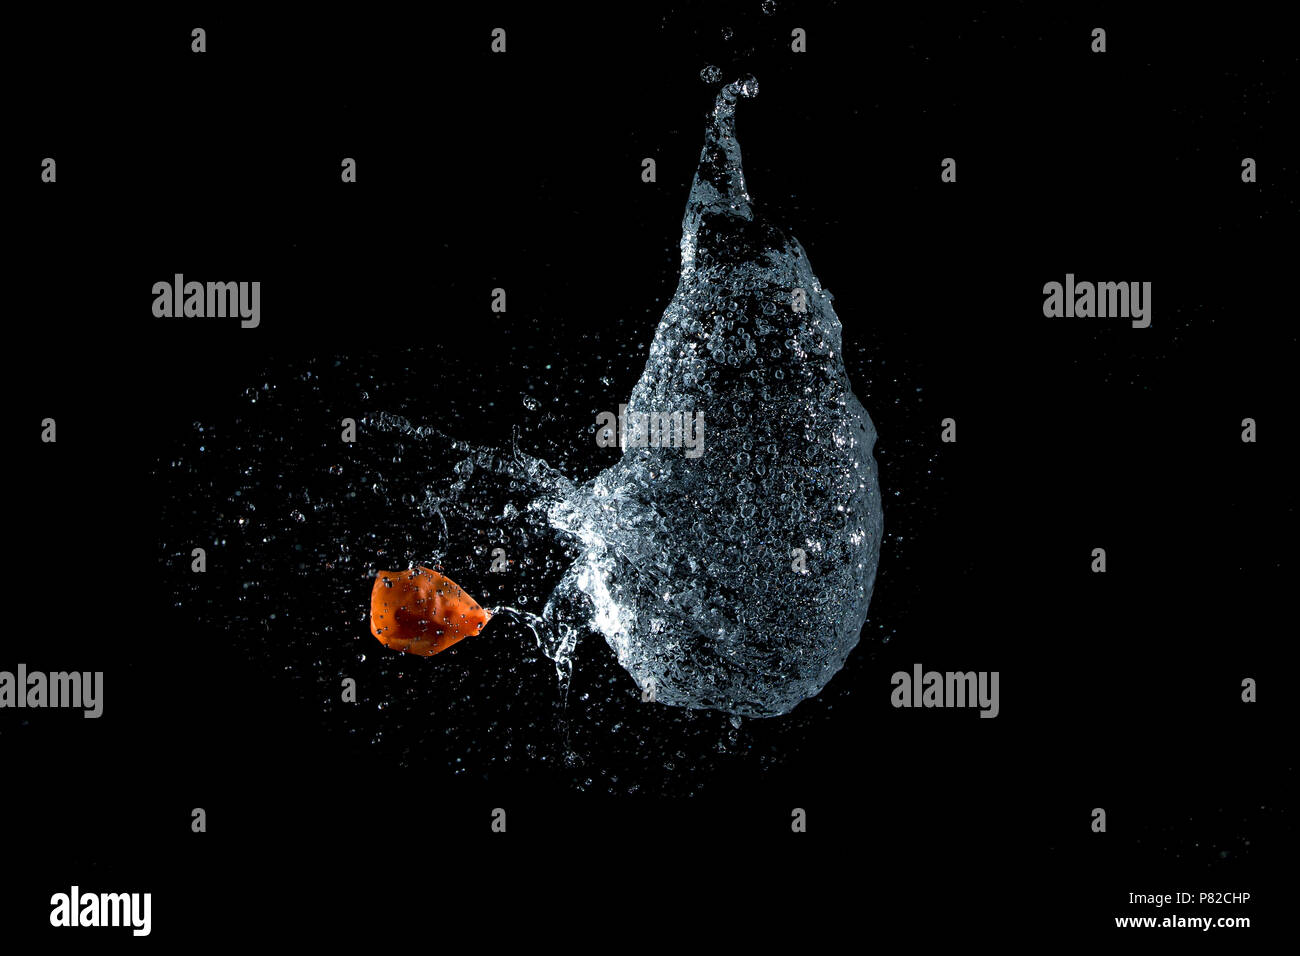 High speed capture of a water balloon bursting - Stock Image